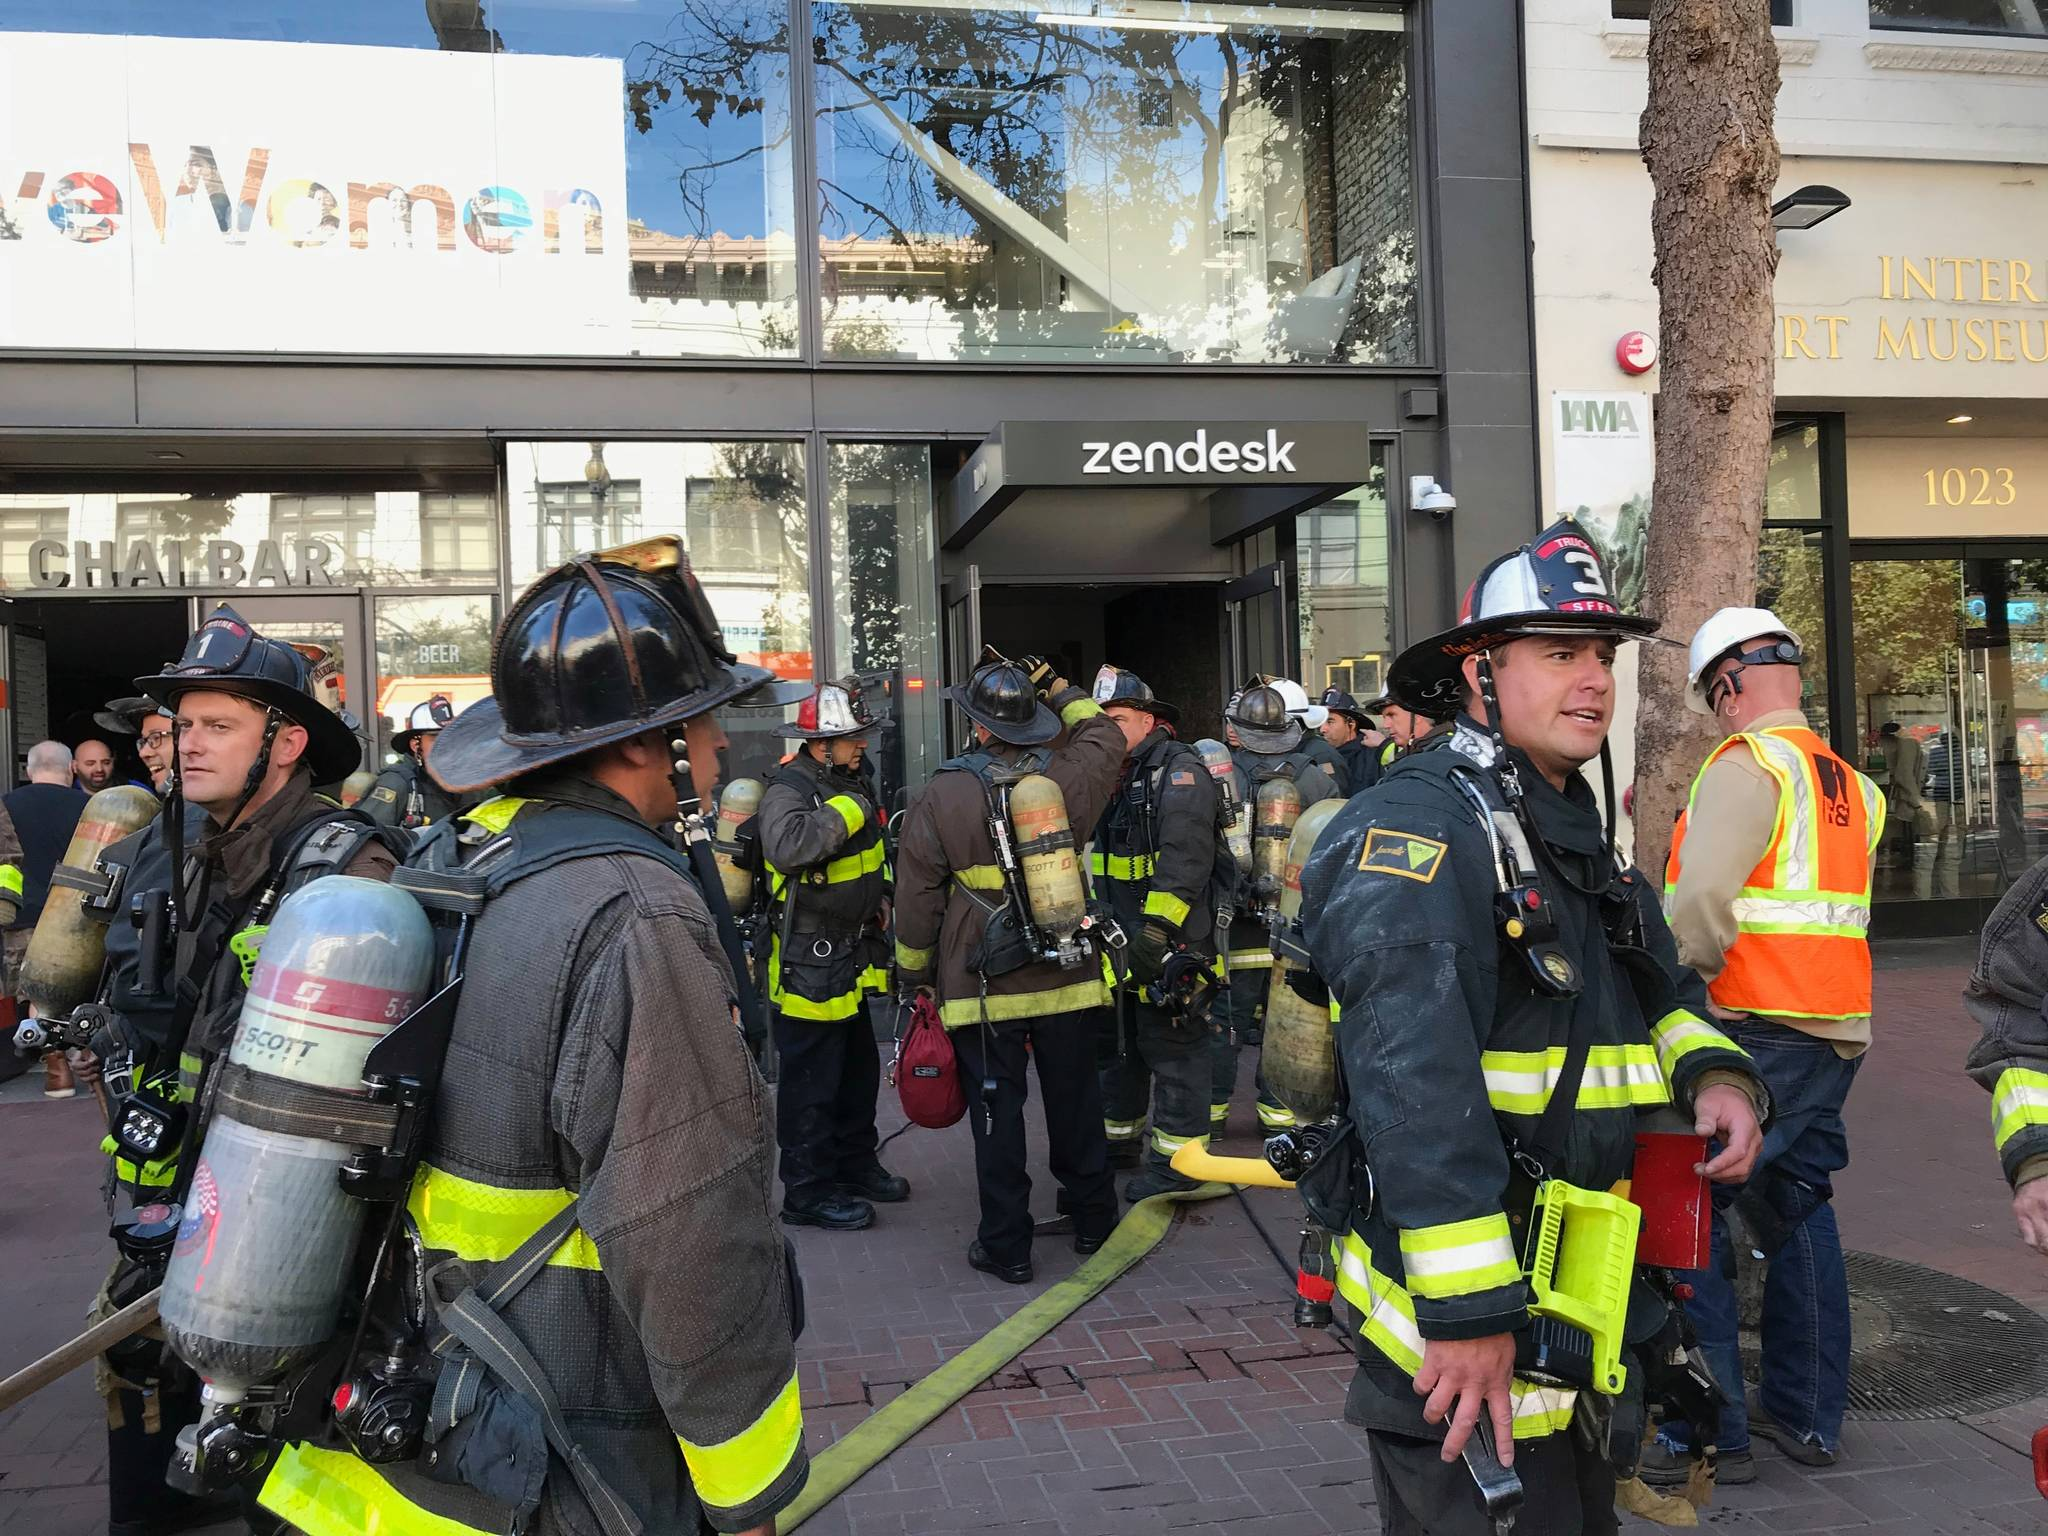 Zendesk building evacuated due to electrical fire